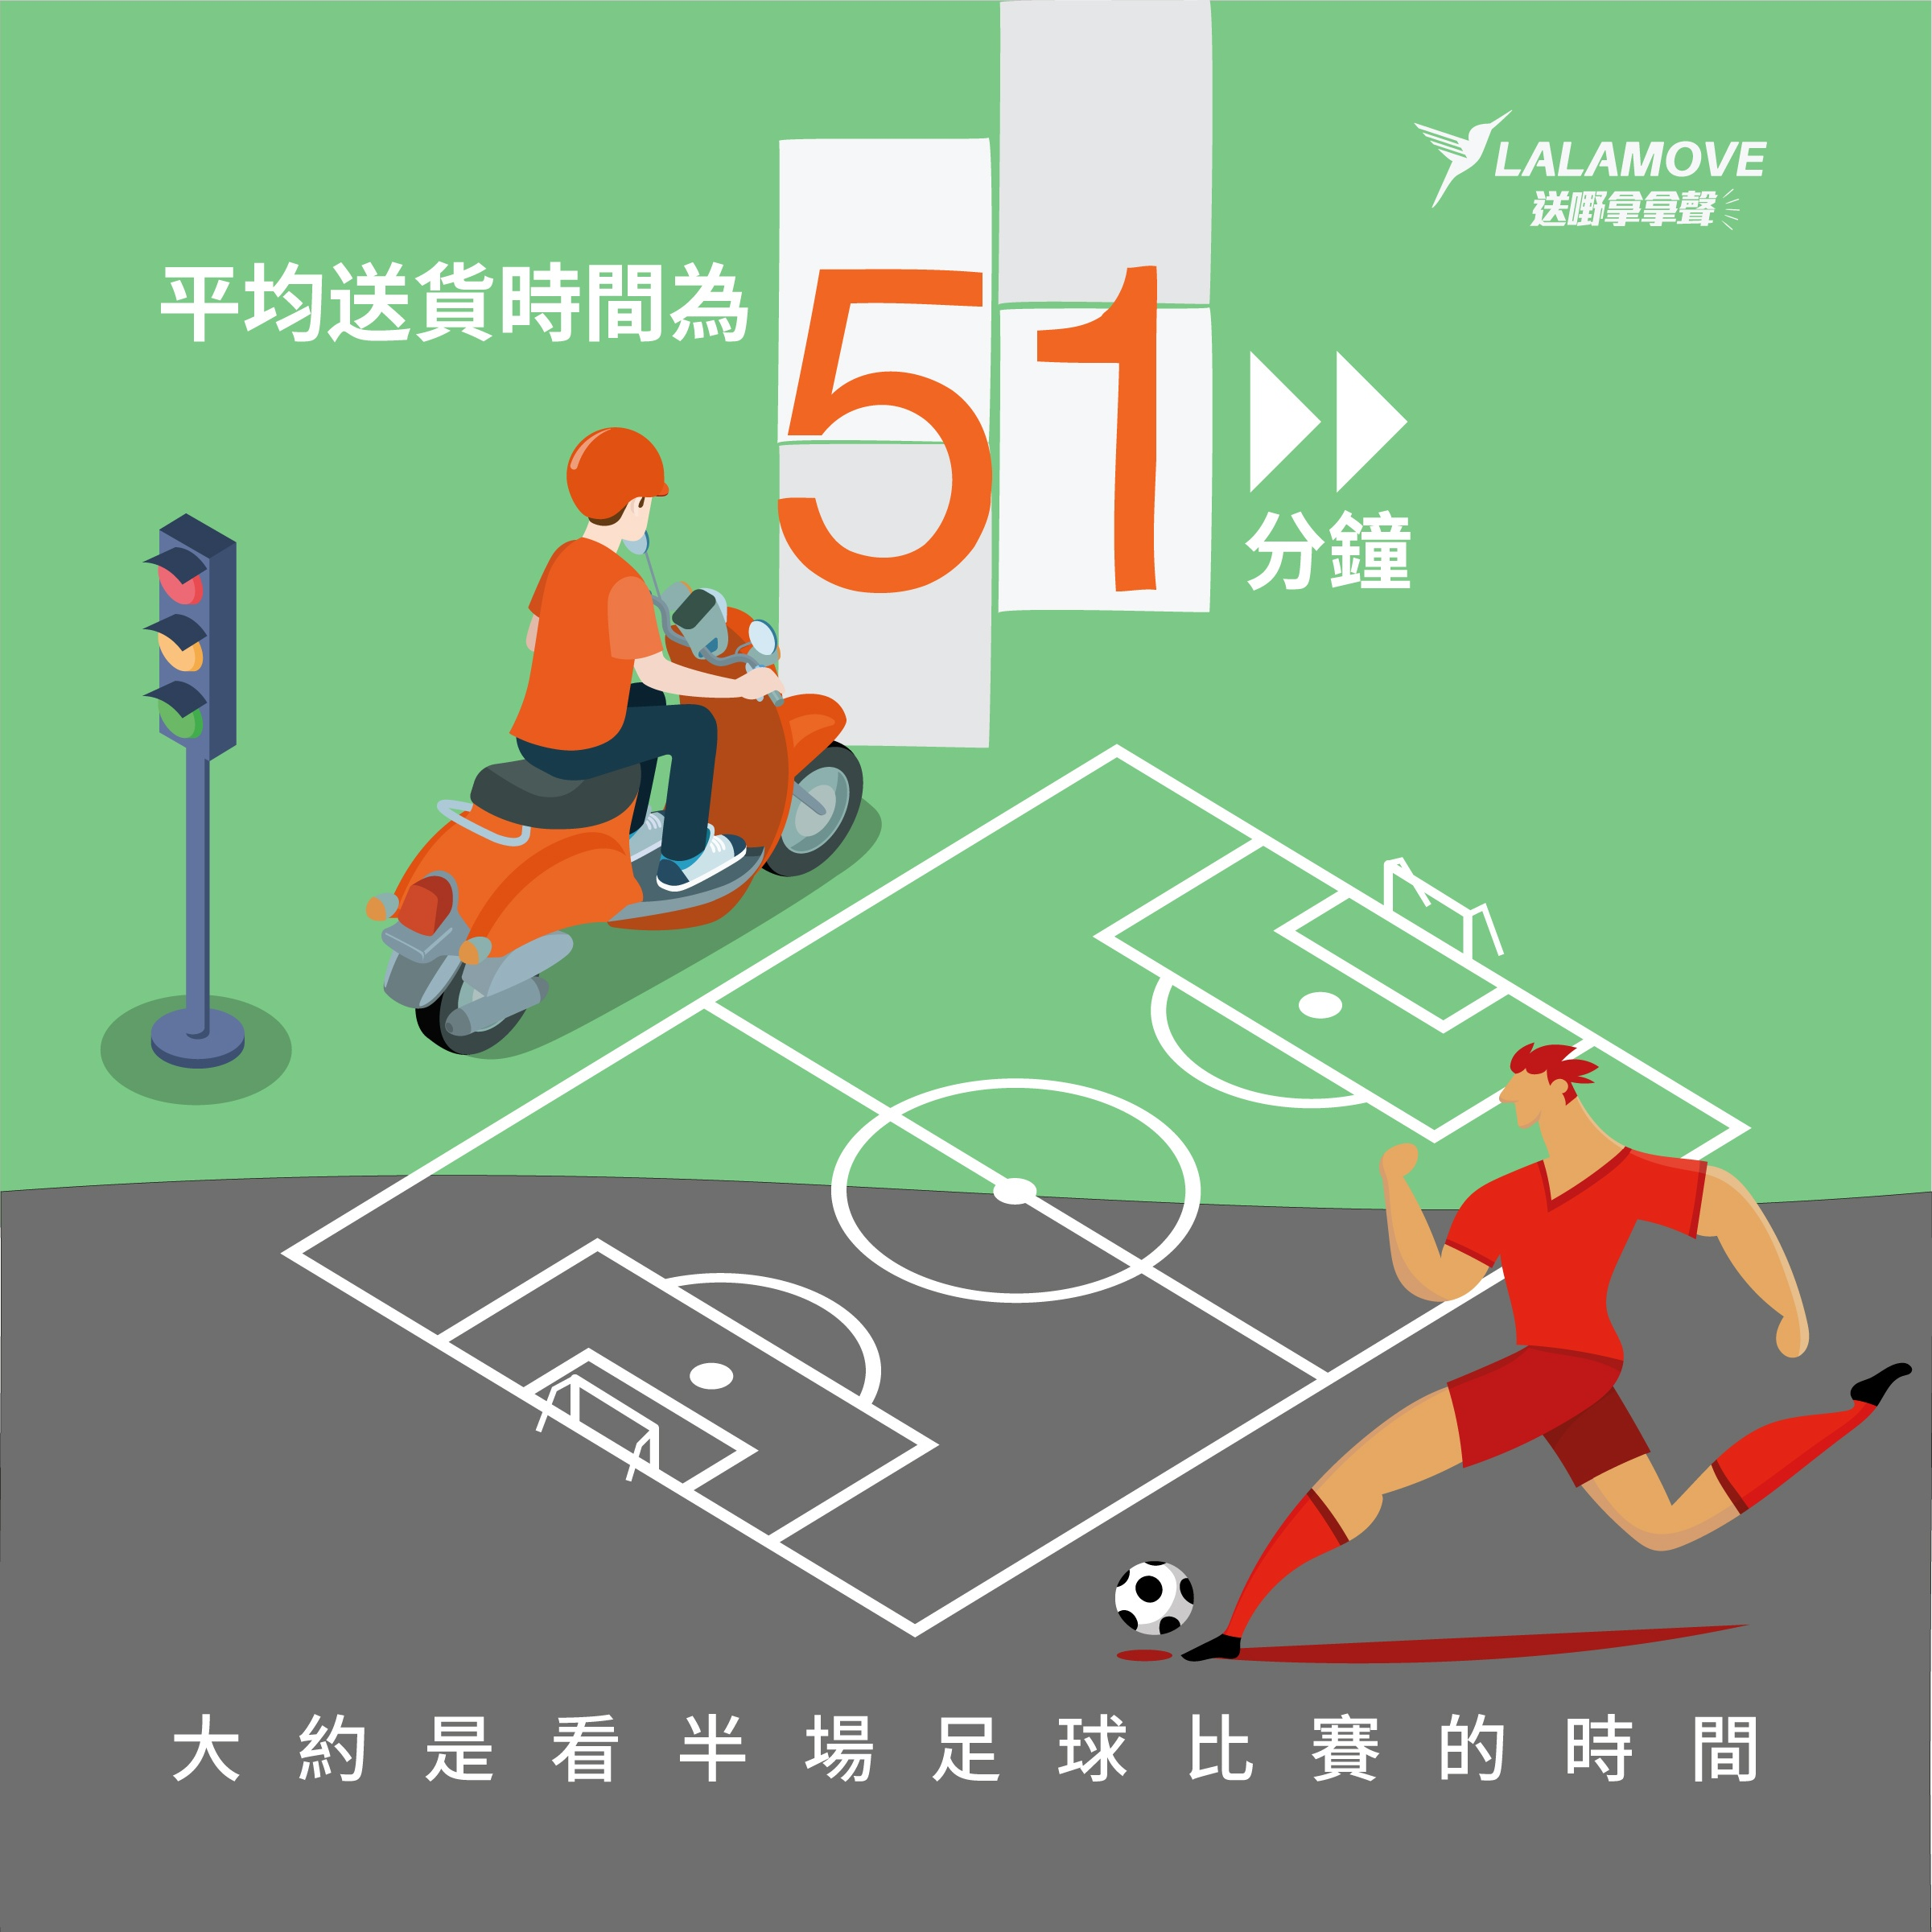 HK_fb_ad_funfactdata_20180419_football-01